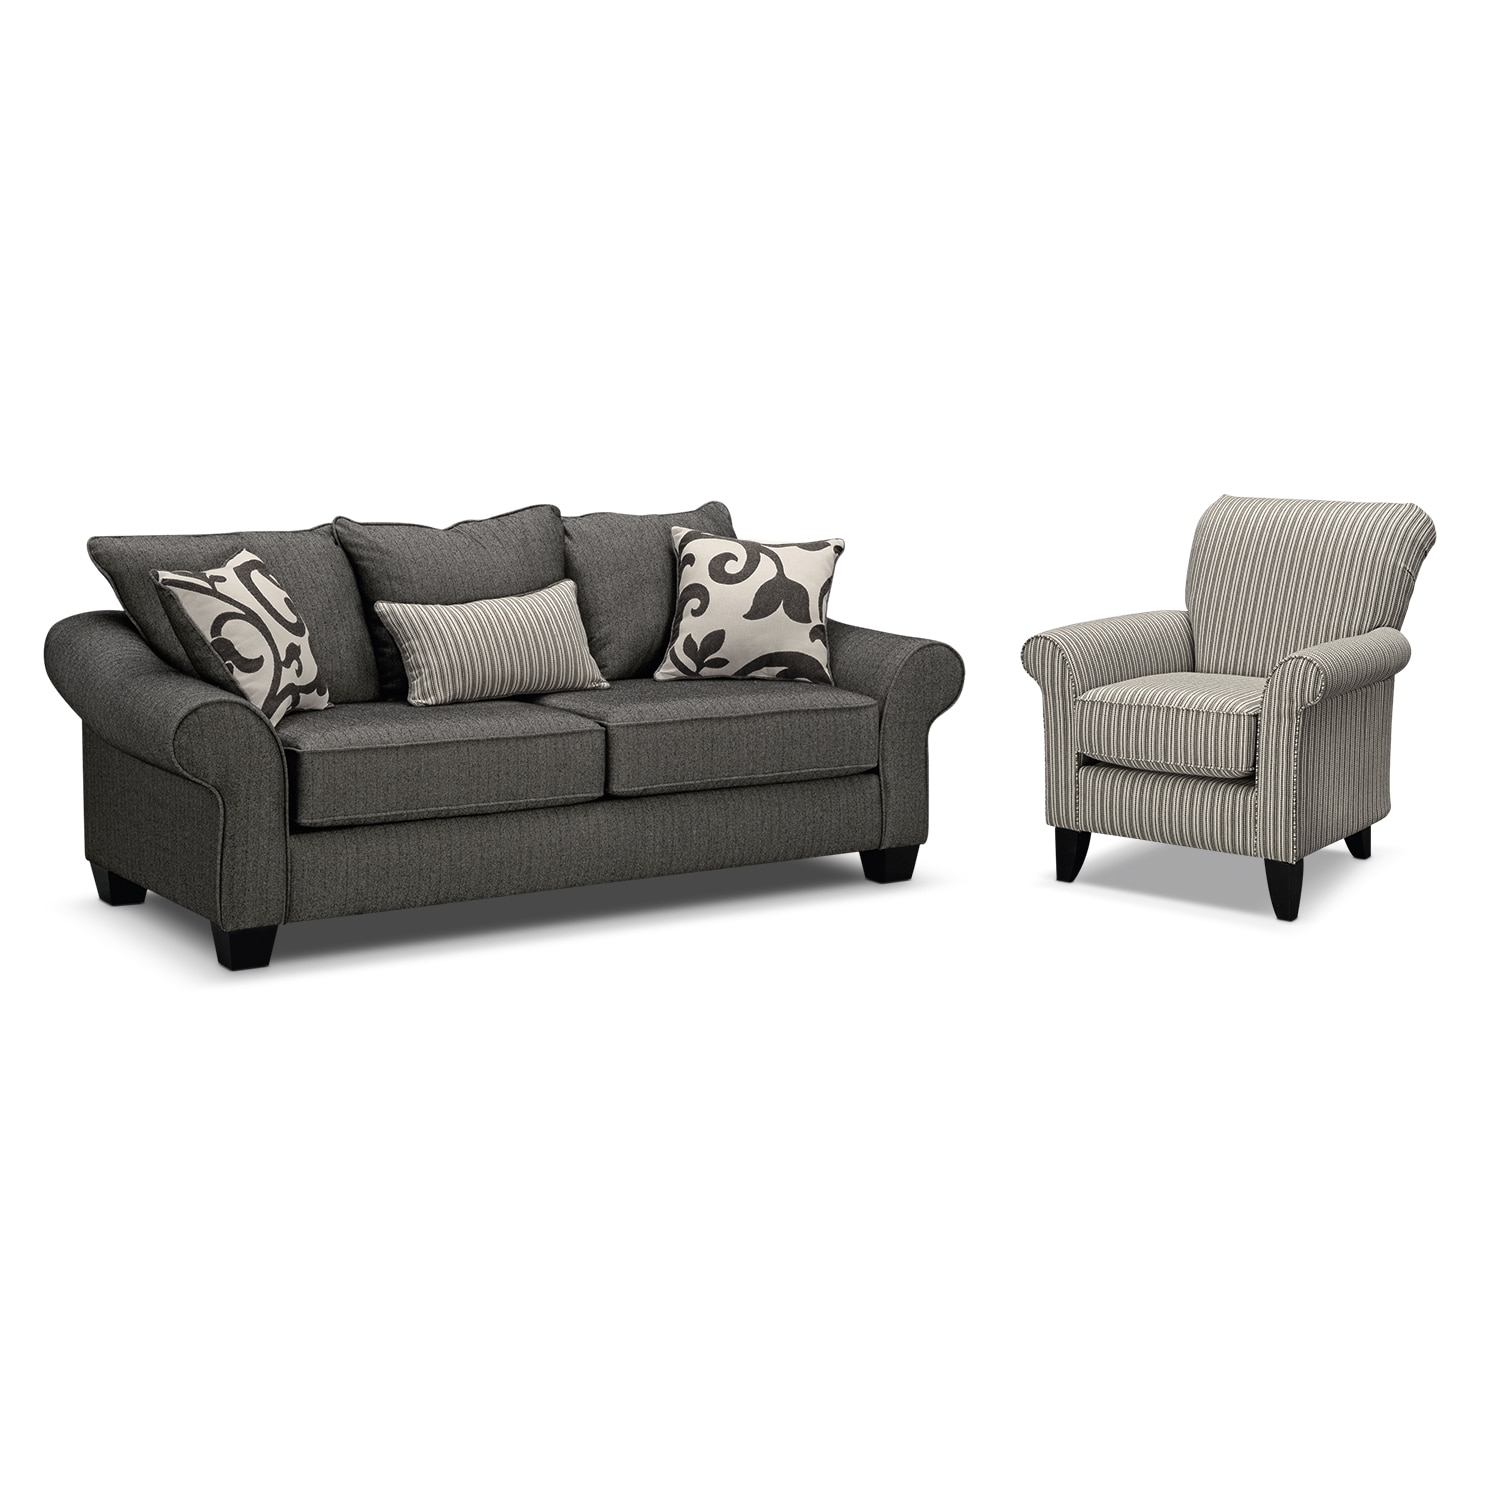 Colette Sofa And Accent Chair Set Gray Value City Furniture Pertaining To Sofa And Accent Chair Set (Image 5 of 15)